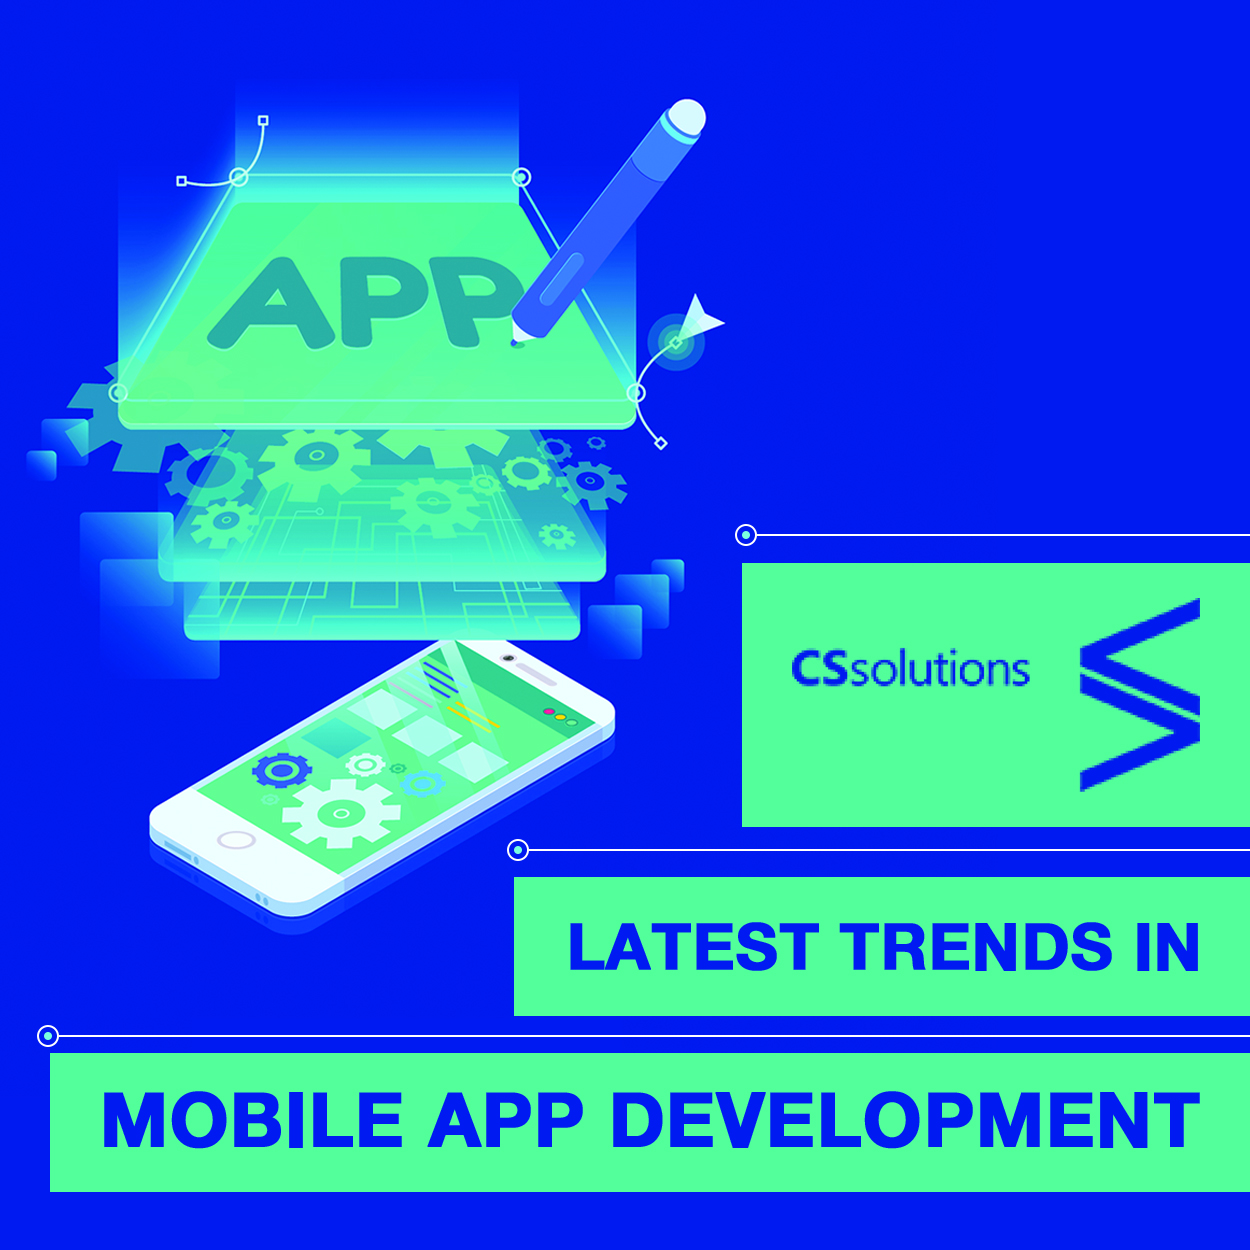 Latest Trends in Mobile App Development